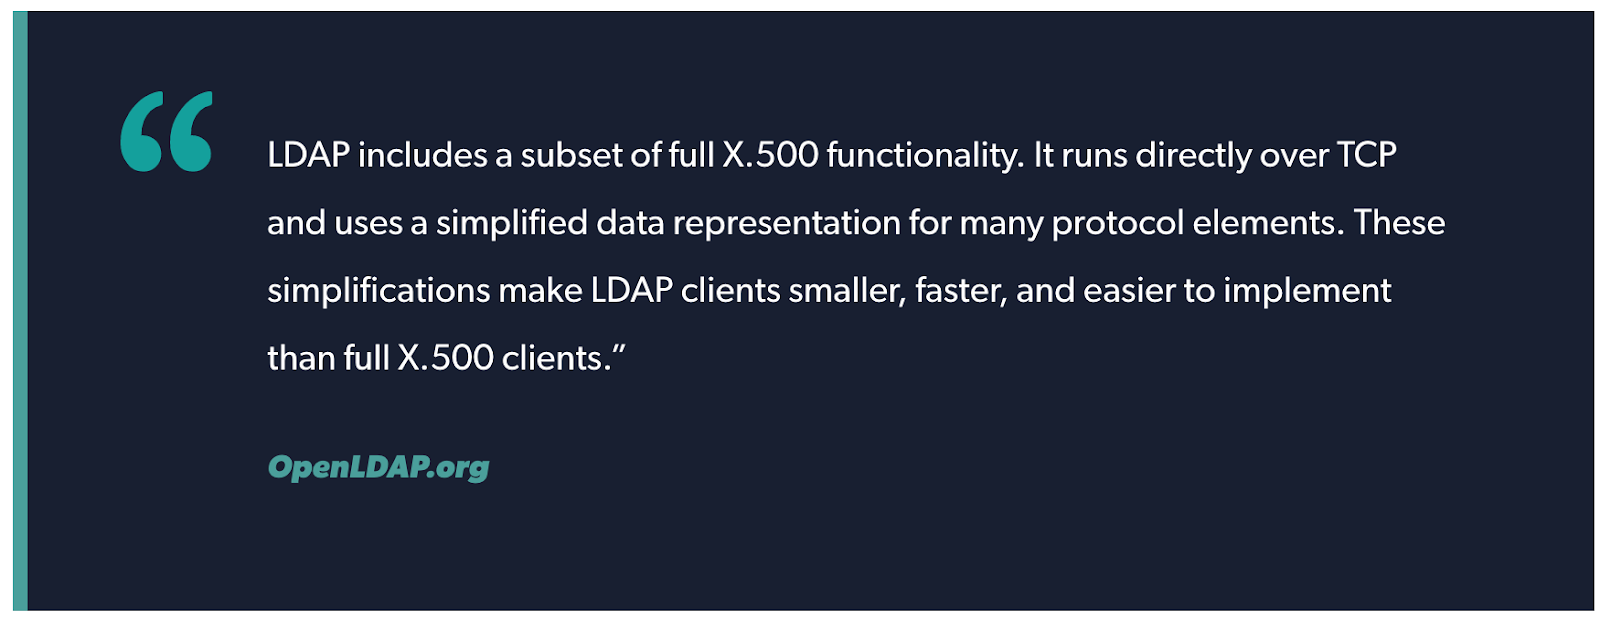 Pulled quote: LDAP includes a subset of full X.500 functionality. It runs directory over TCP and uses a simplified data representation for many protocol elements. These simplifications make LDAP clients smaller, faster, and easier to implement than full X.500 clients.